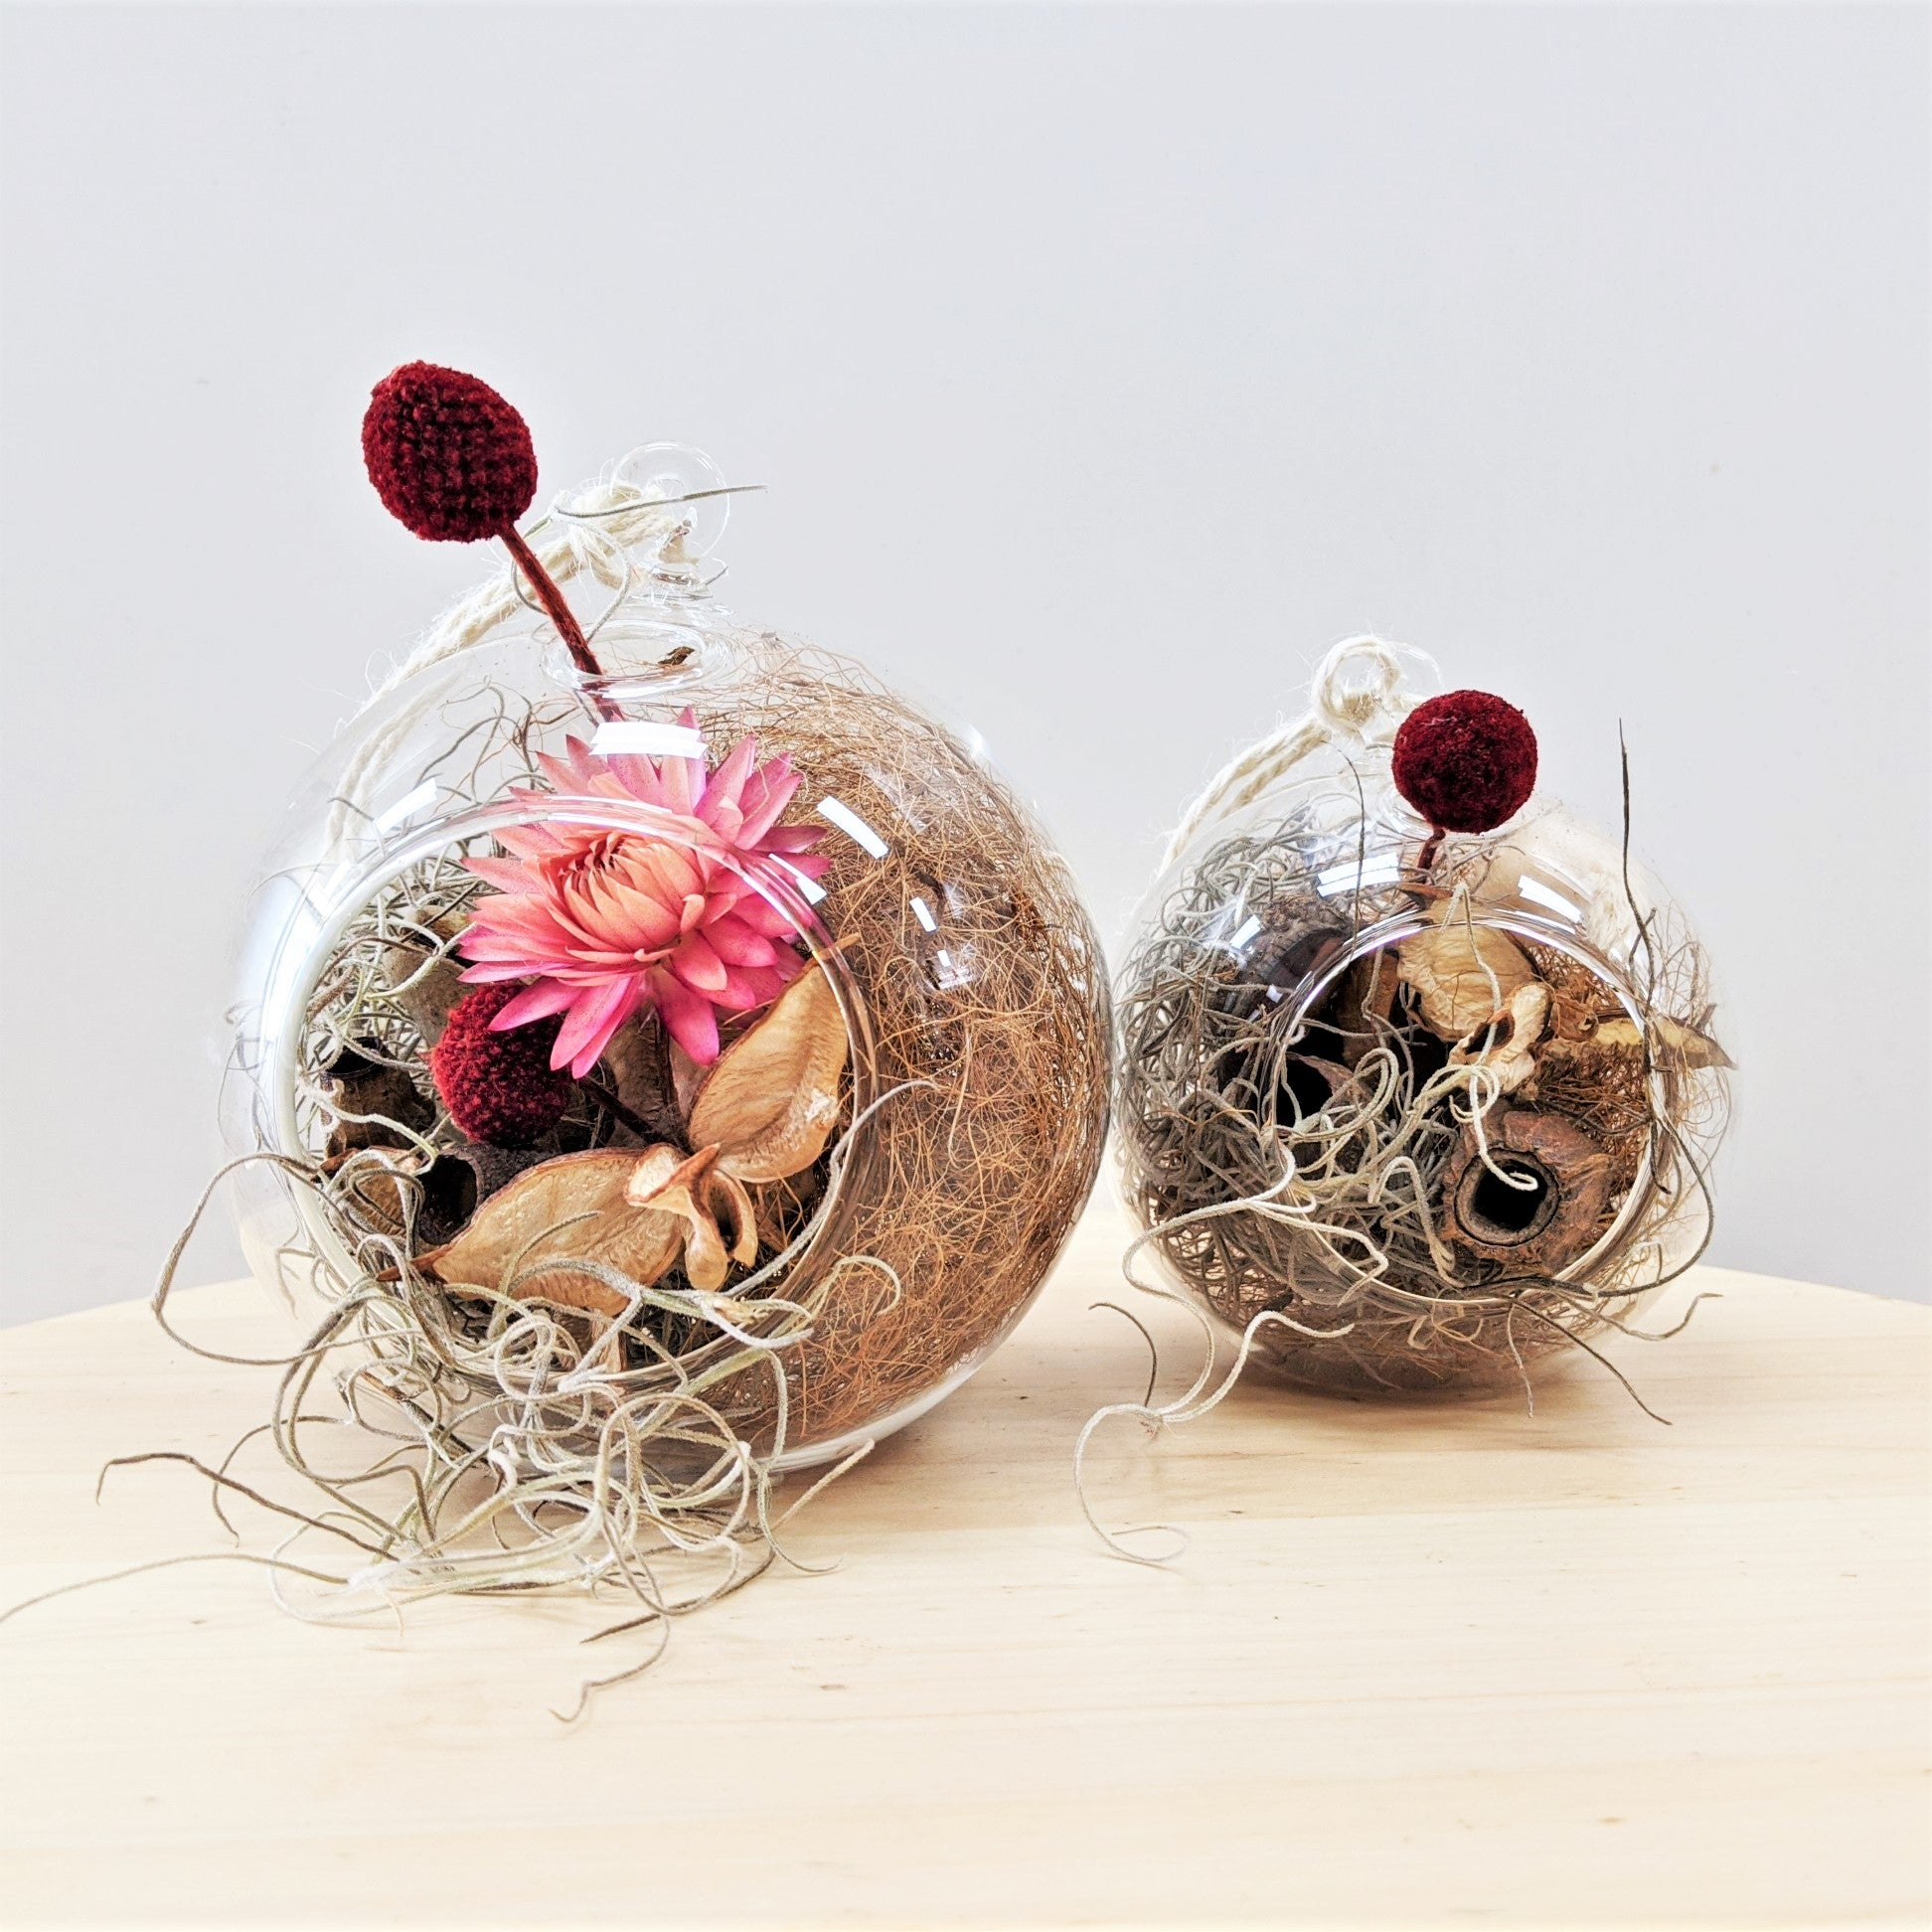 Blue Mountains Florist Botanical Art Lawson Christmas Baubles Dried Everlasting Arrangement Large Pair